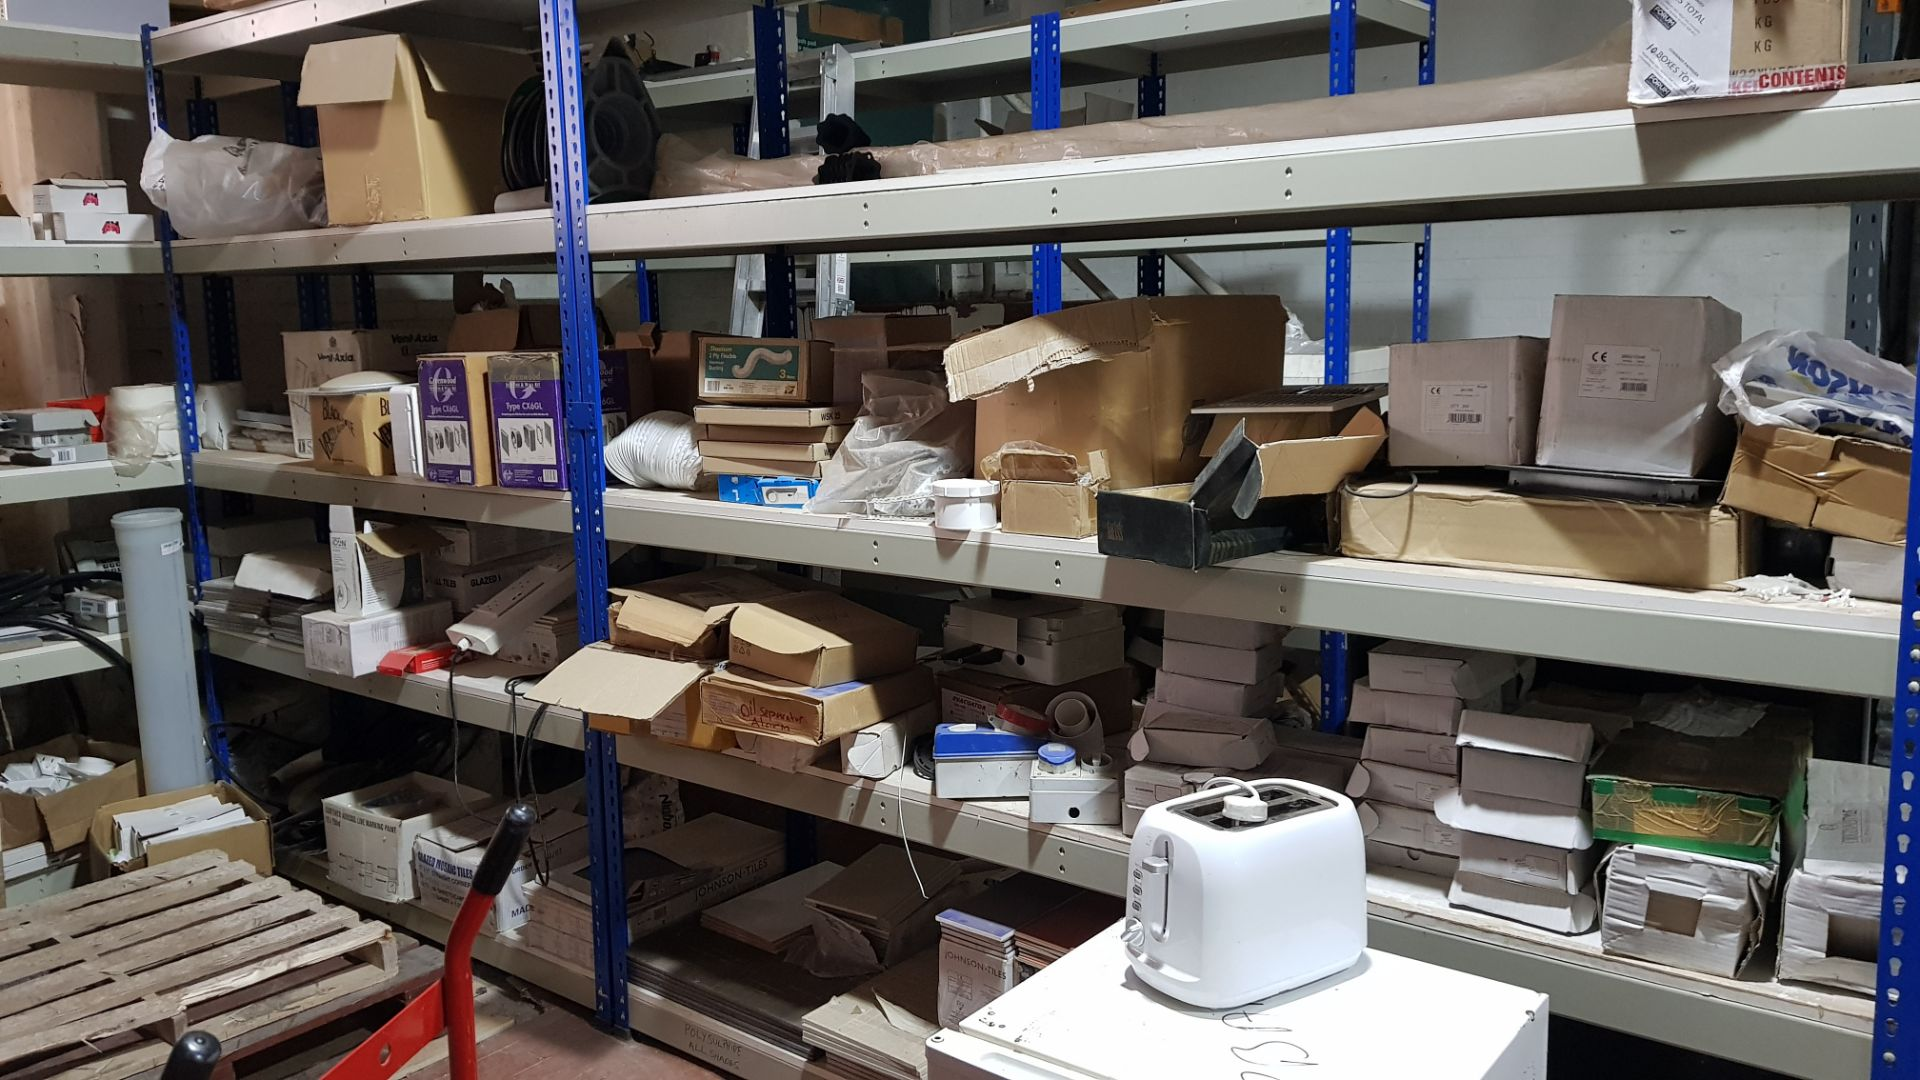 LARGE QUANTITY OF MIXED BUILDING PRODUCTS CONTAINED OVER 14 BAYS TO INCLUDE - BRAND NEW (PRO-ELEC - Image 2 of 3